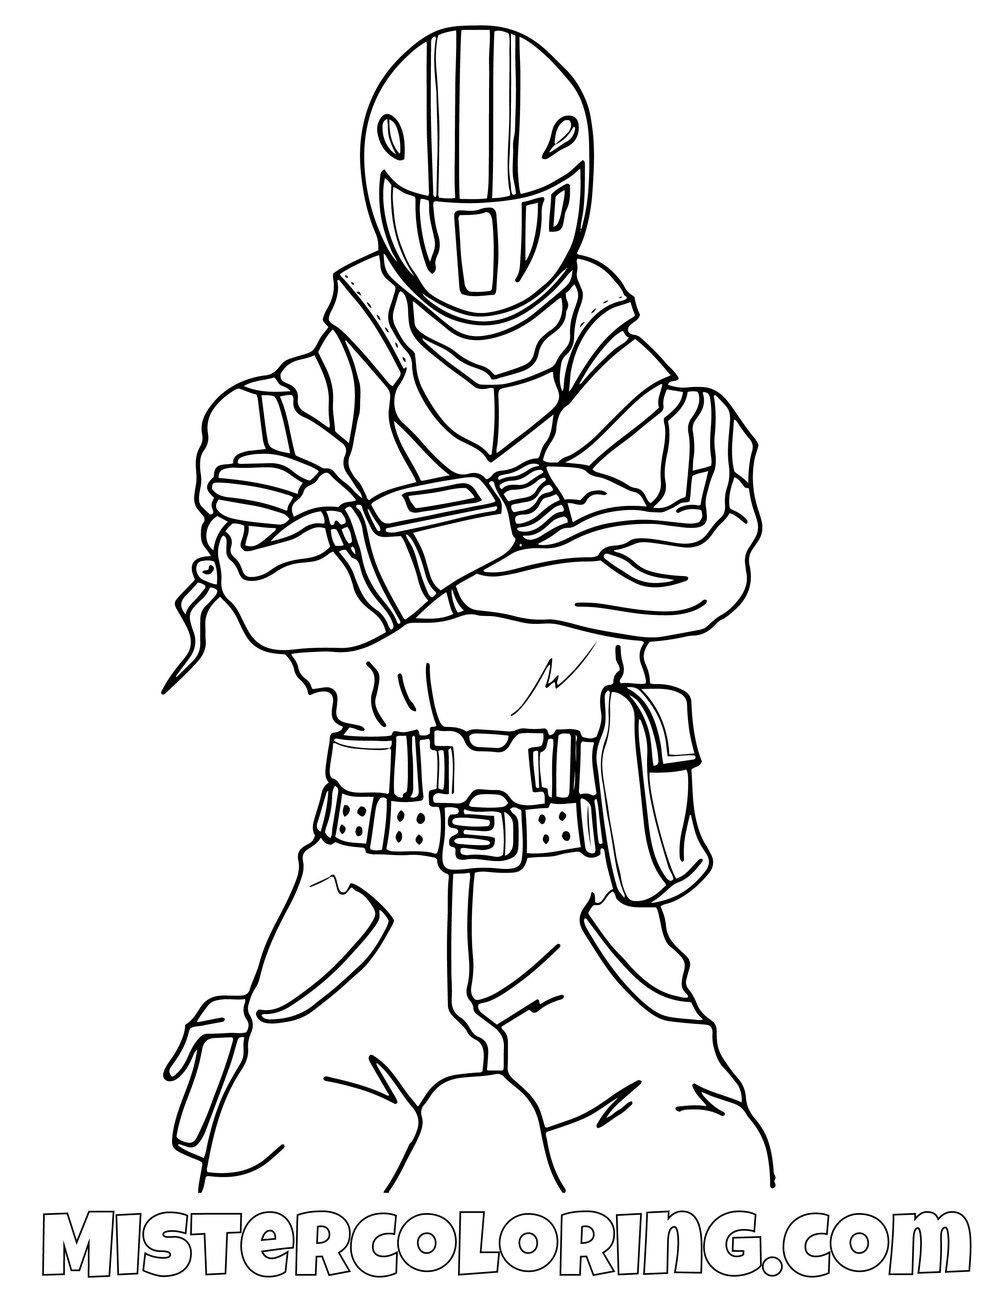 Night Rider Fortnite Coloring Page Coloring Pages For Kids Coloring Pages Coloring Pages For Boys